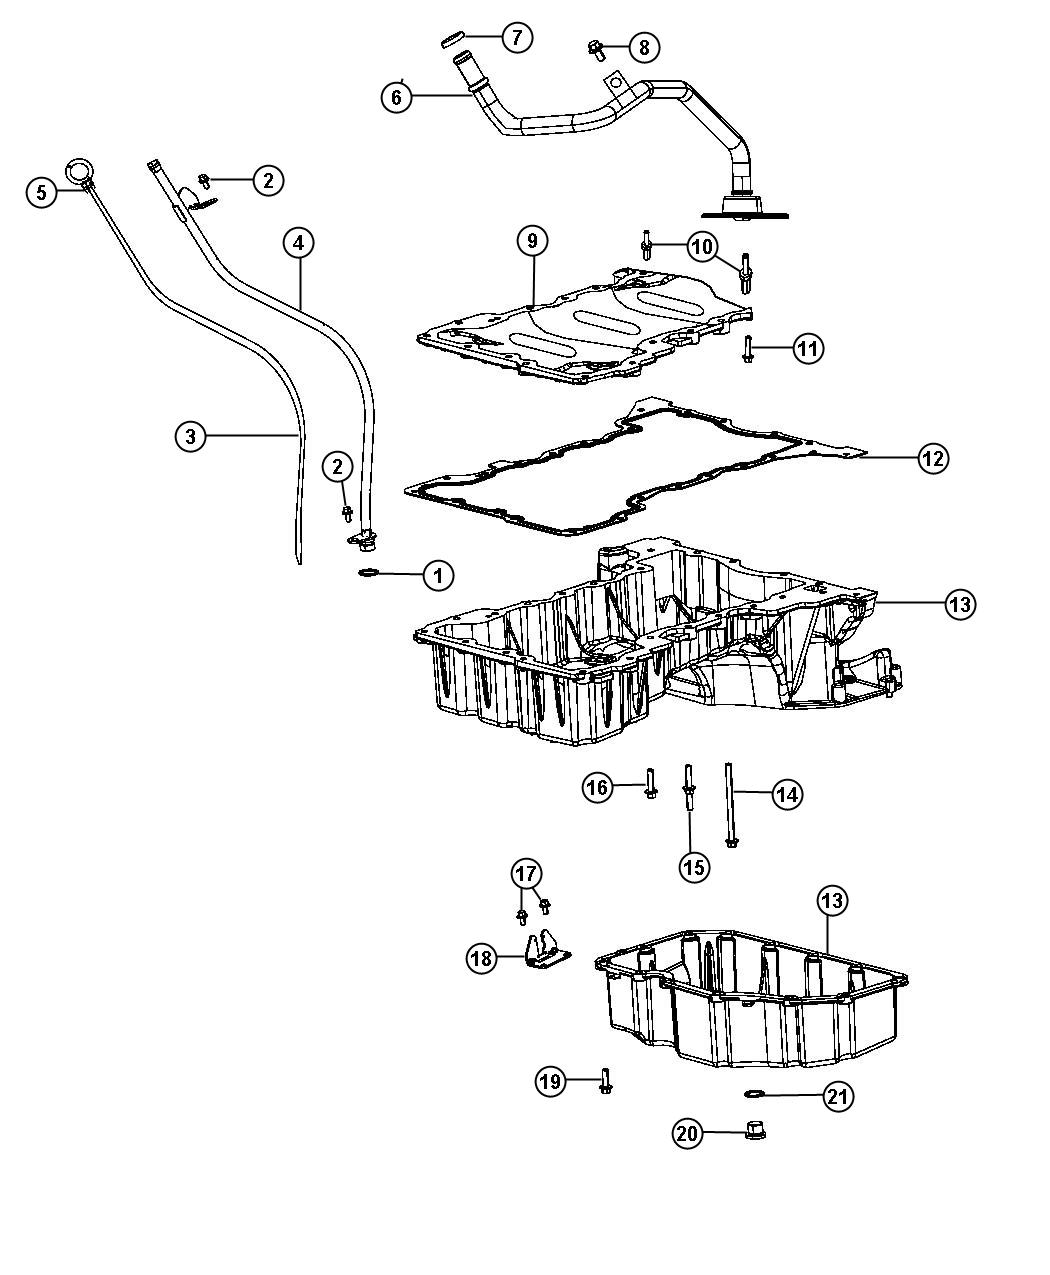 Diagram Engine Oil Pan, Engine Oil Level Indicator And Related Parts 3.0L Diesel [3.0L V6 Turbo Diesel Engine]. for your Plymouth